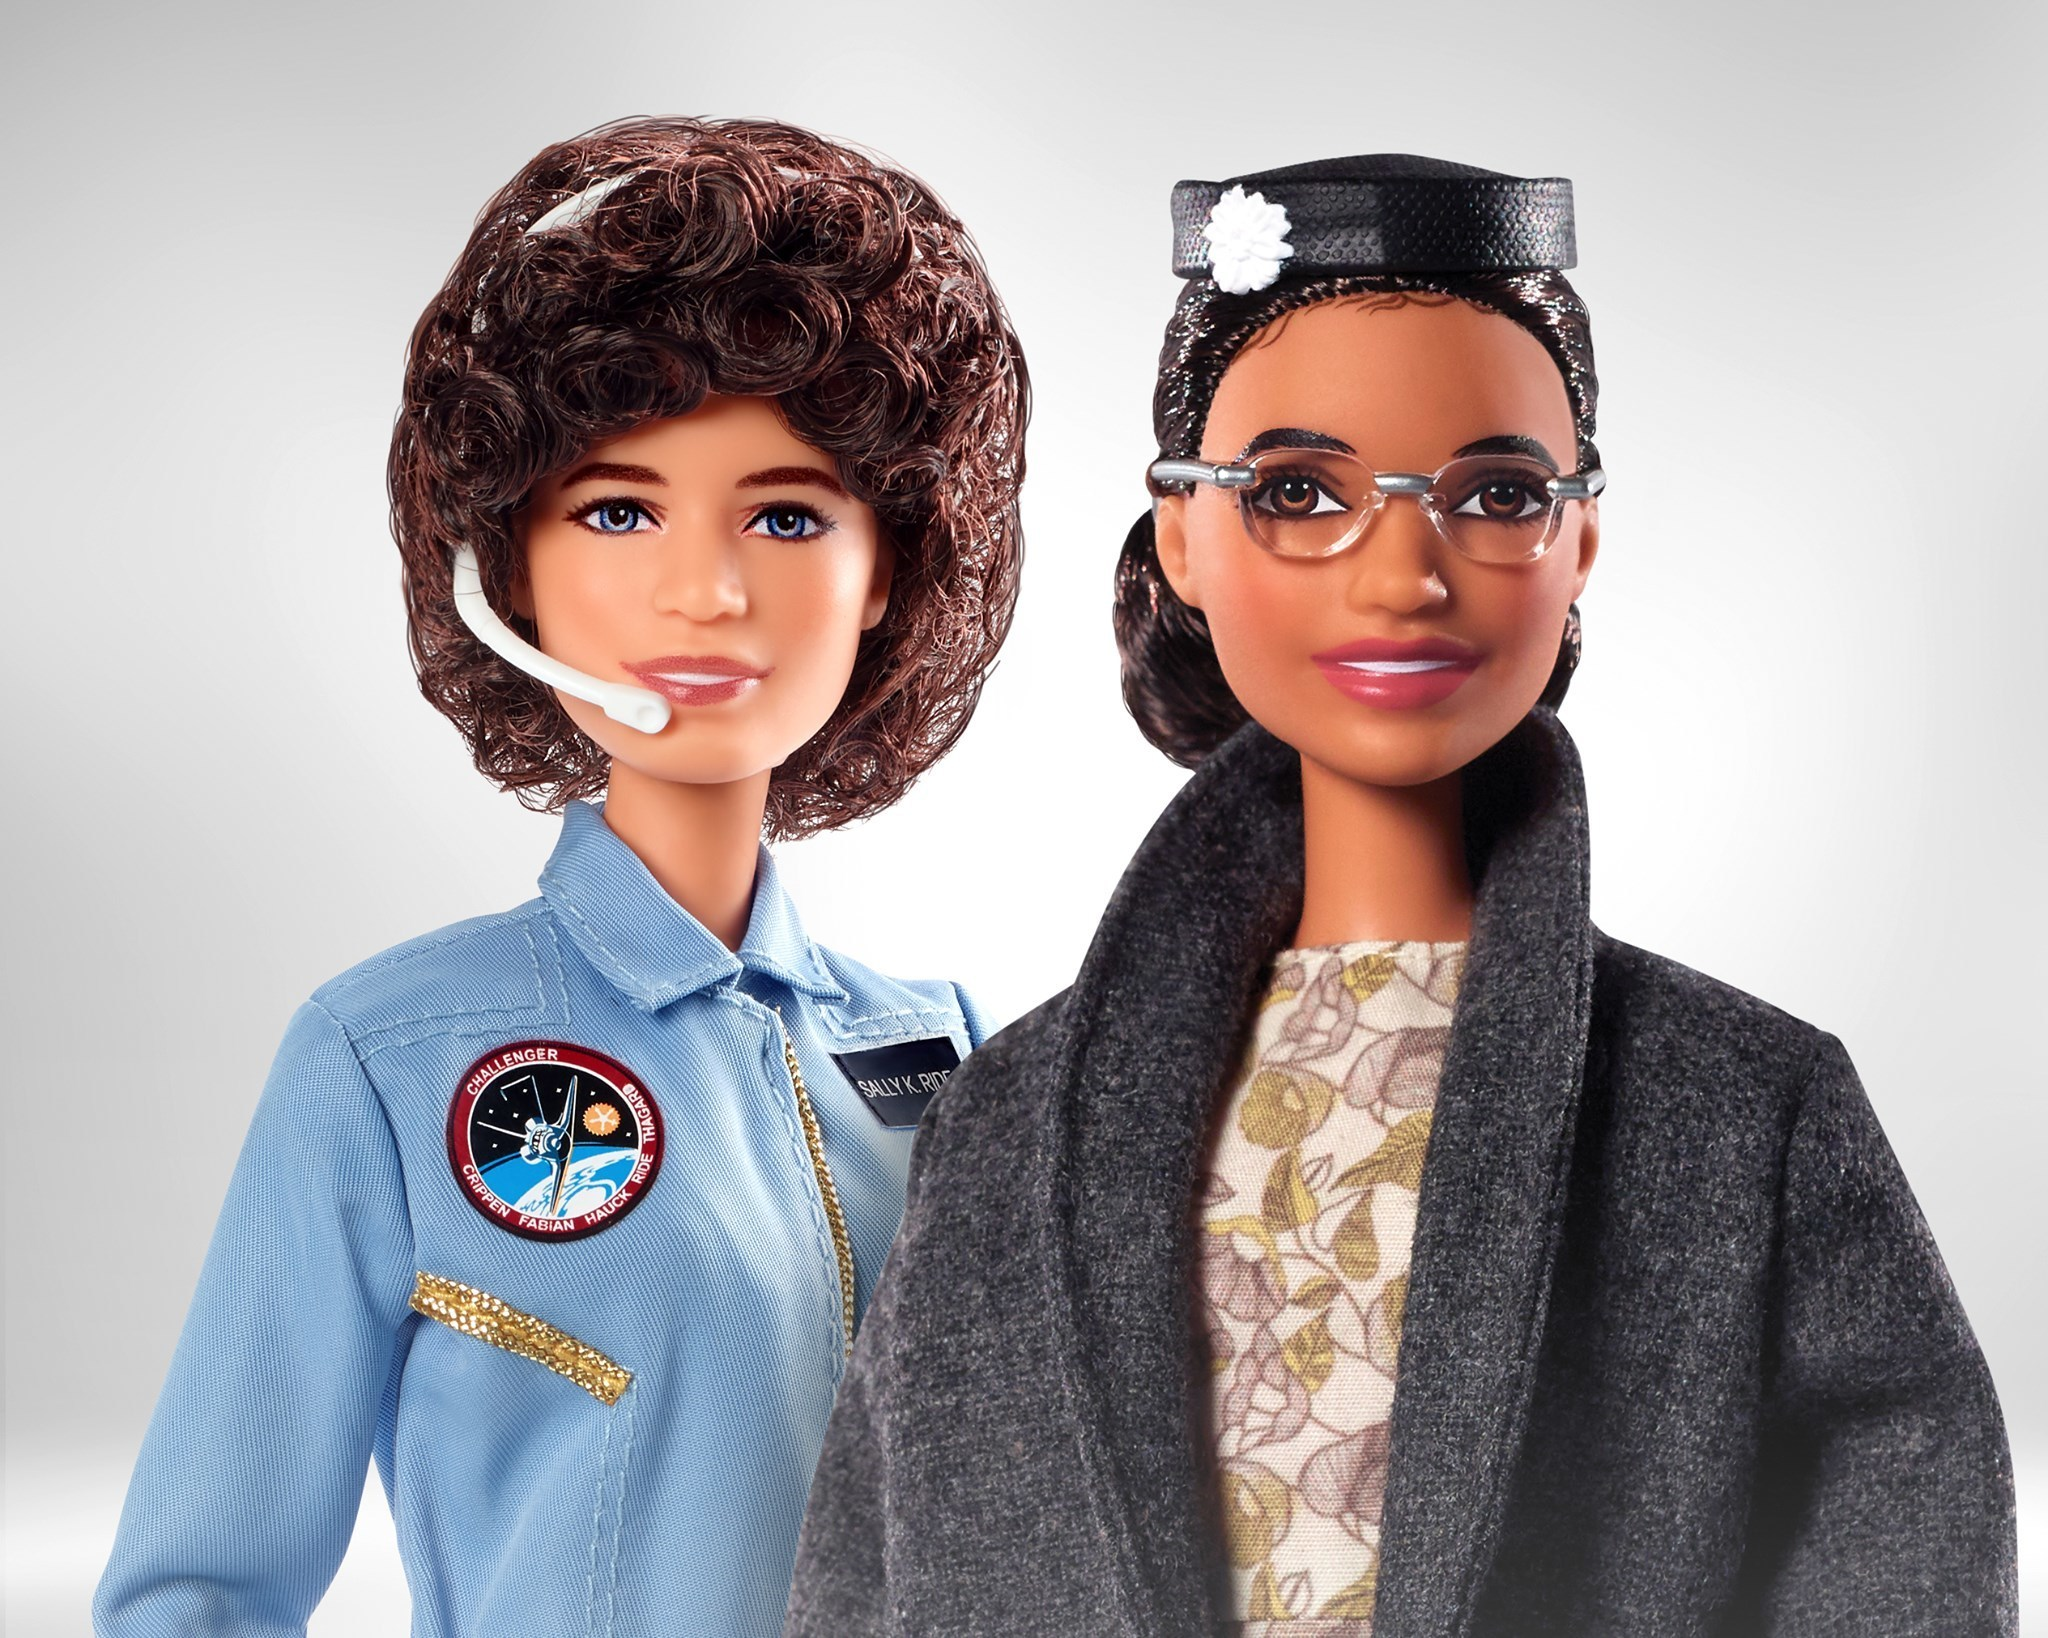 Barbie adds Rosa Parks and Sally Ride to its Inspiring Women Series